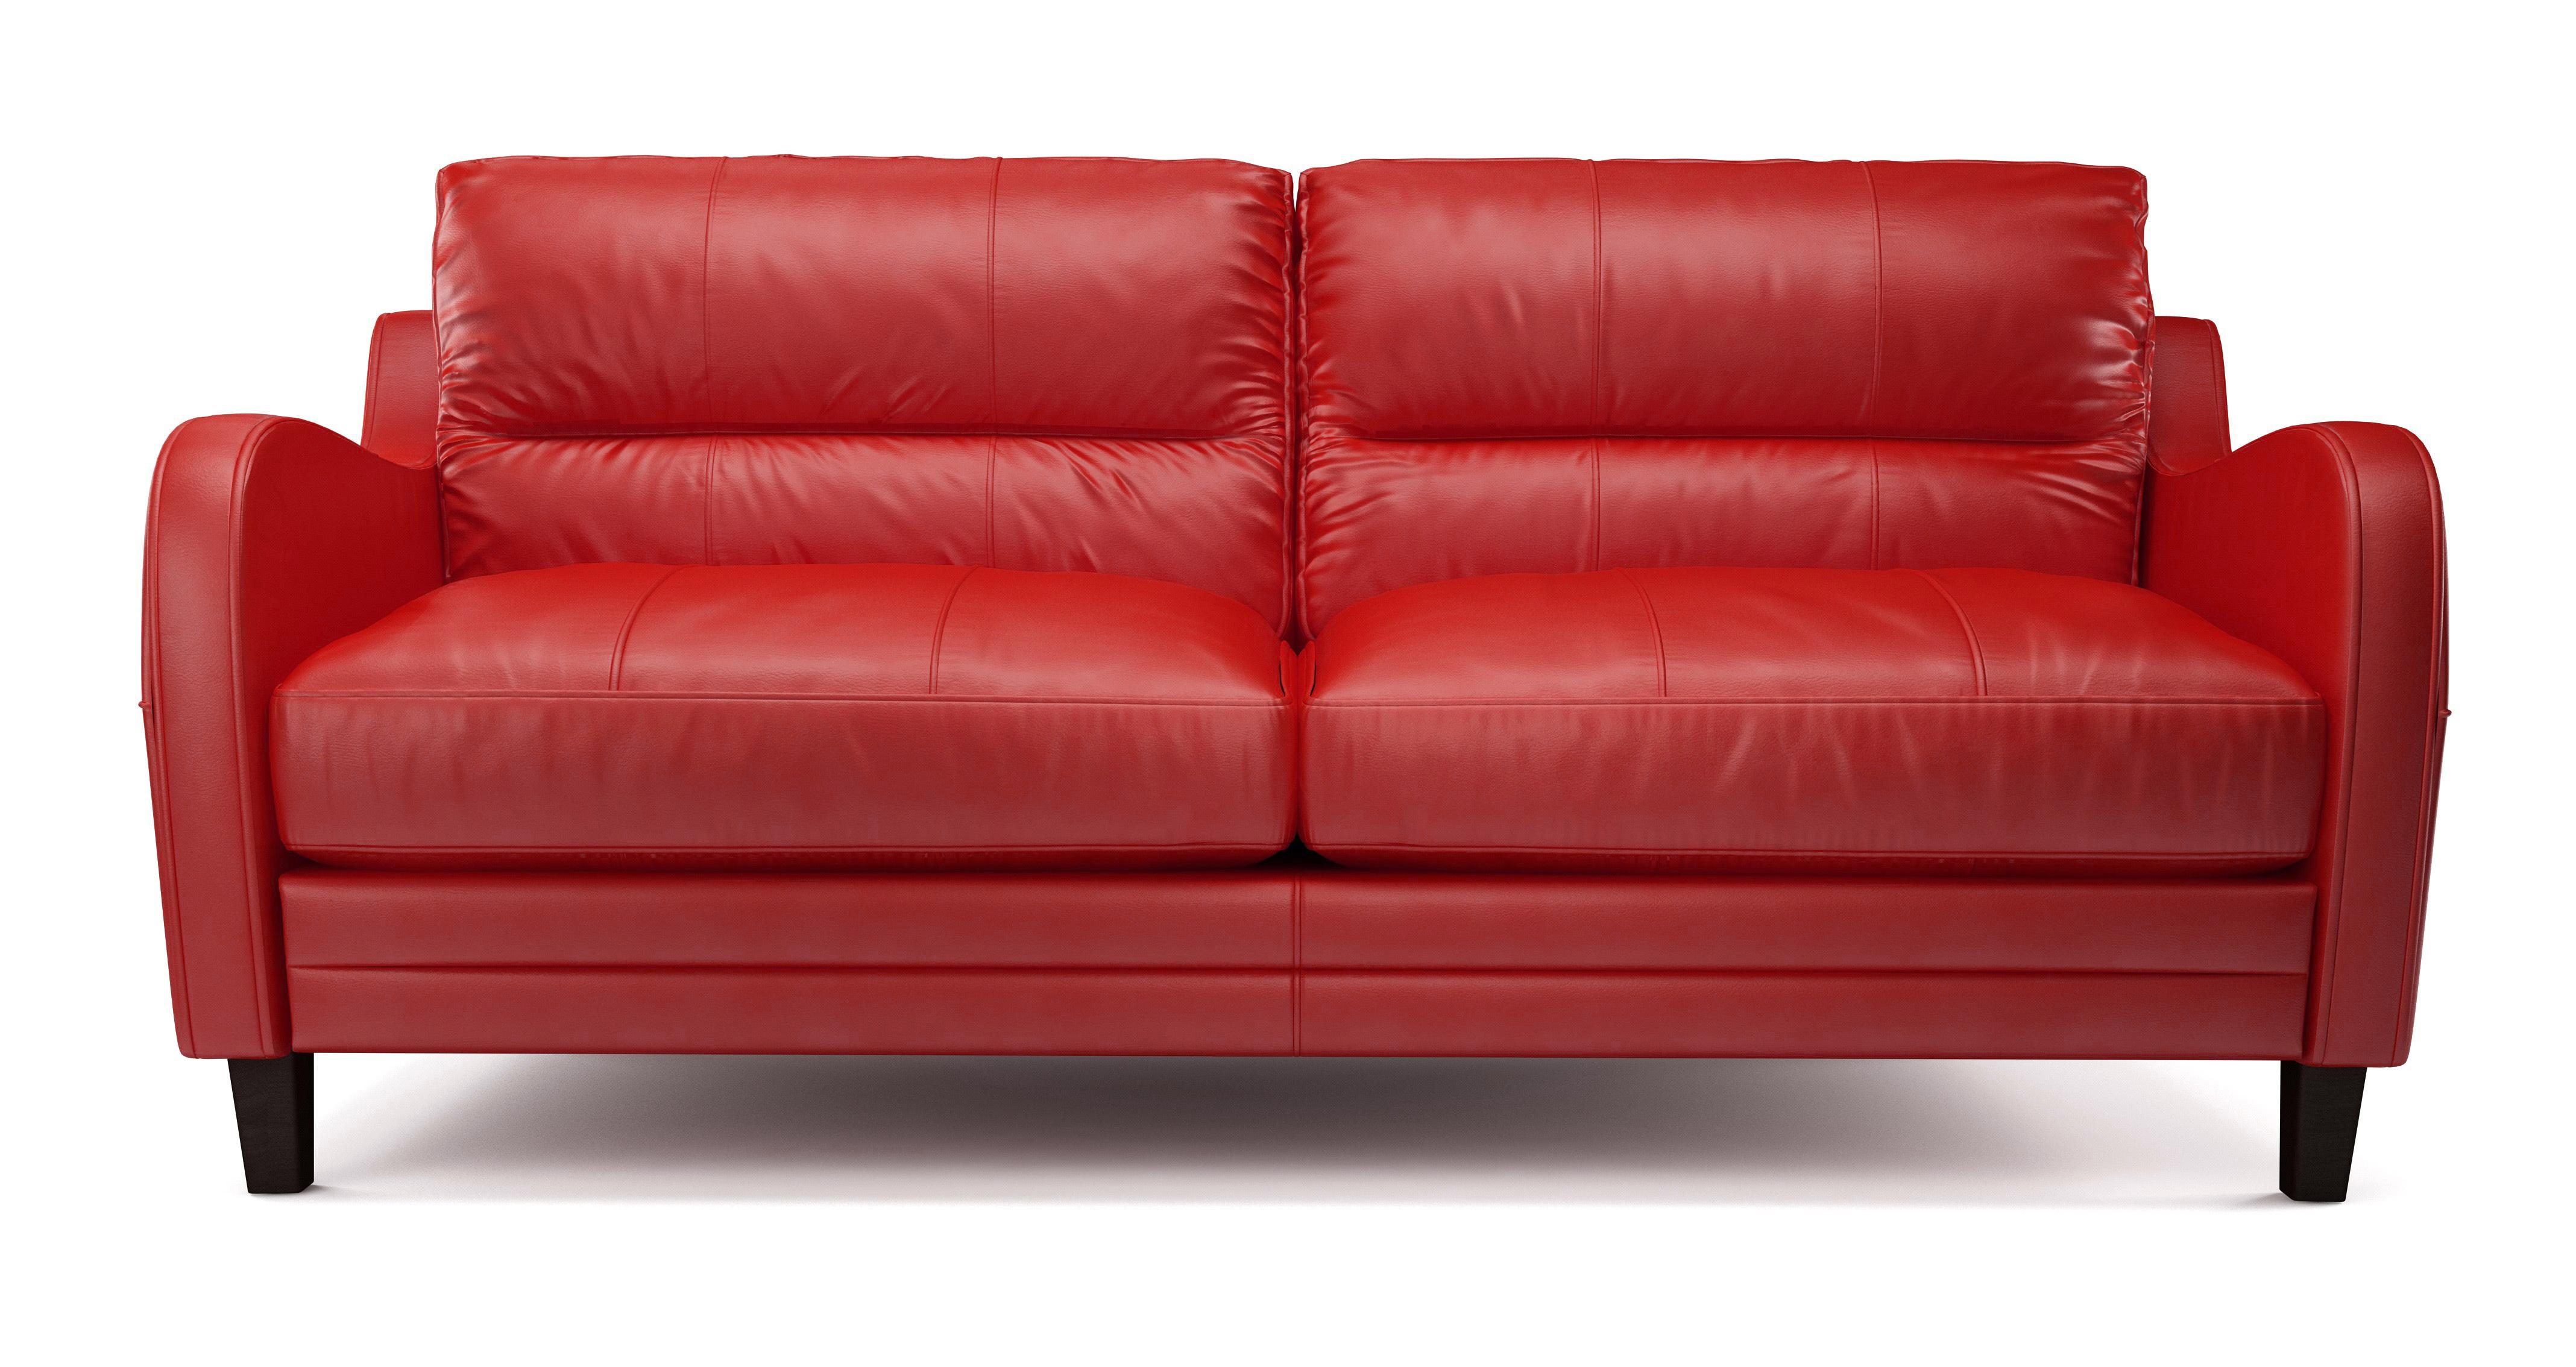 sofas direct from factory uk sofa dfs perk red leather variation group choose